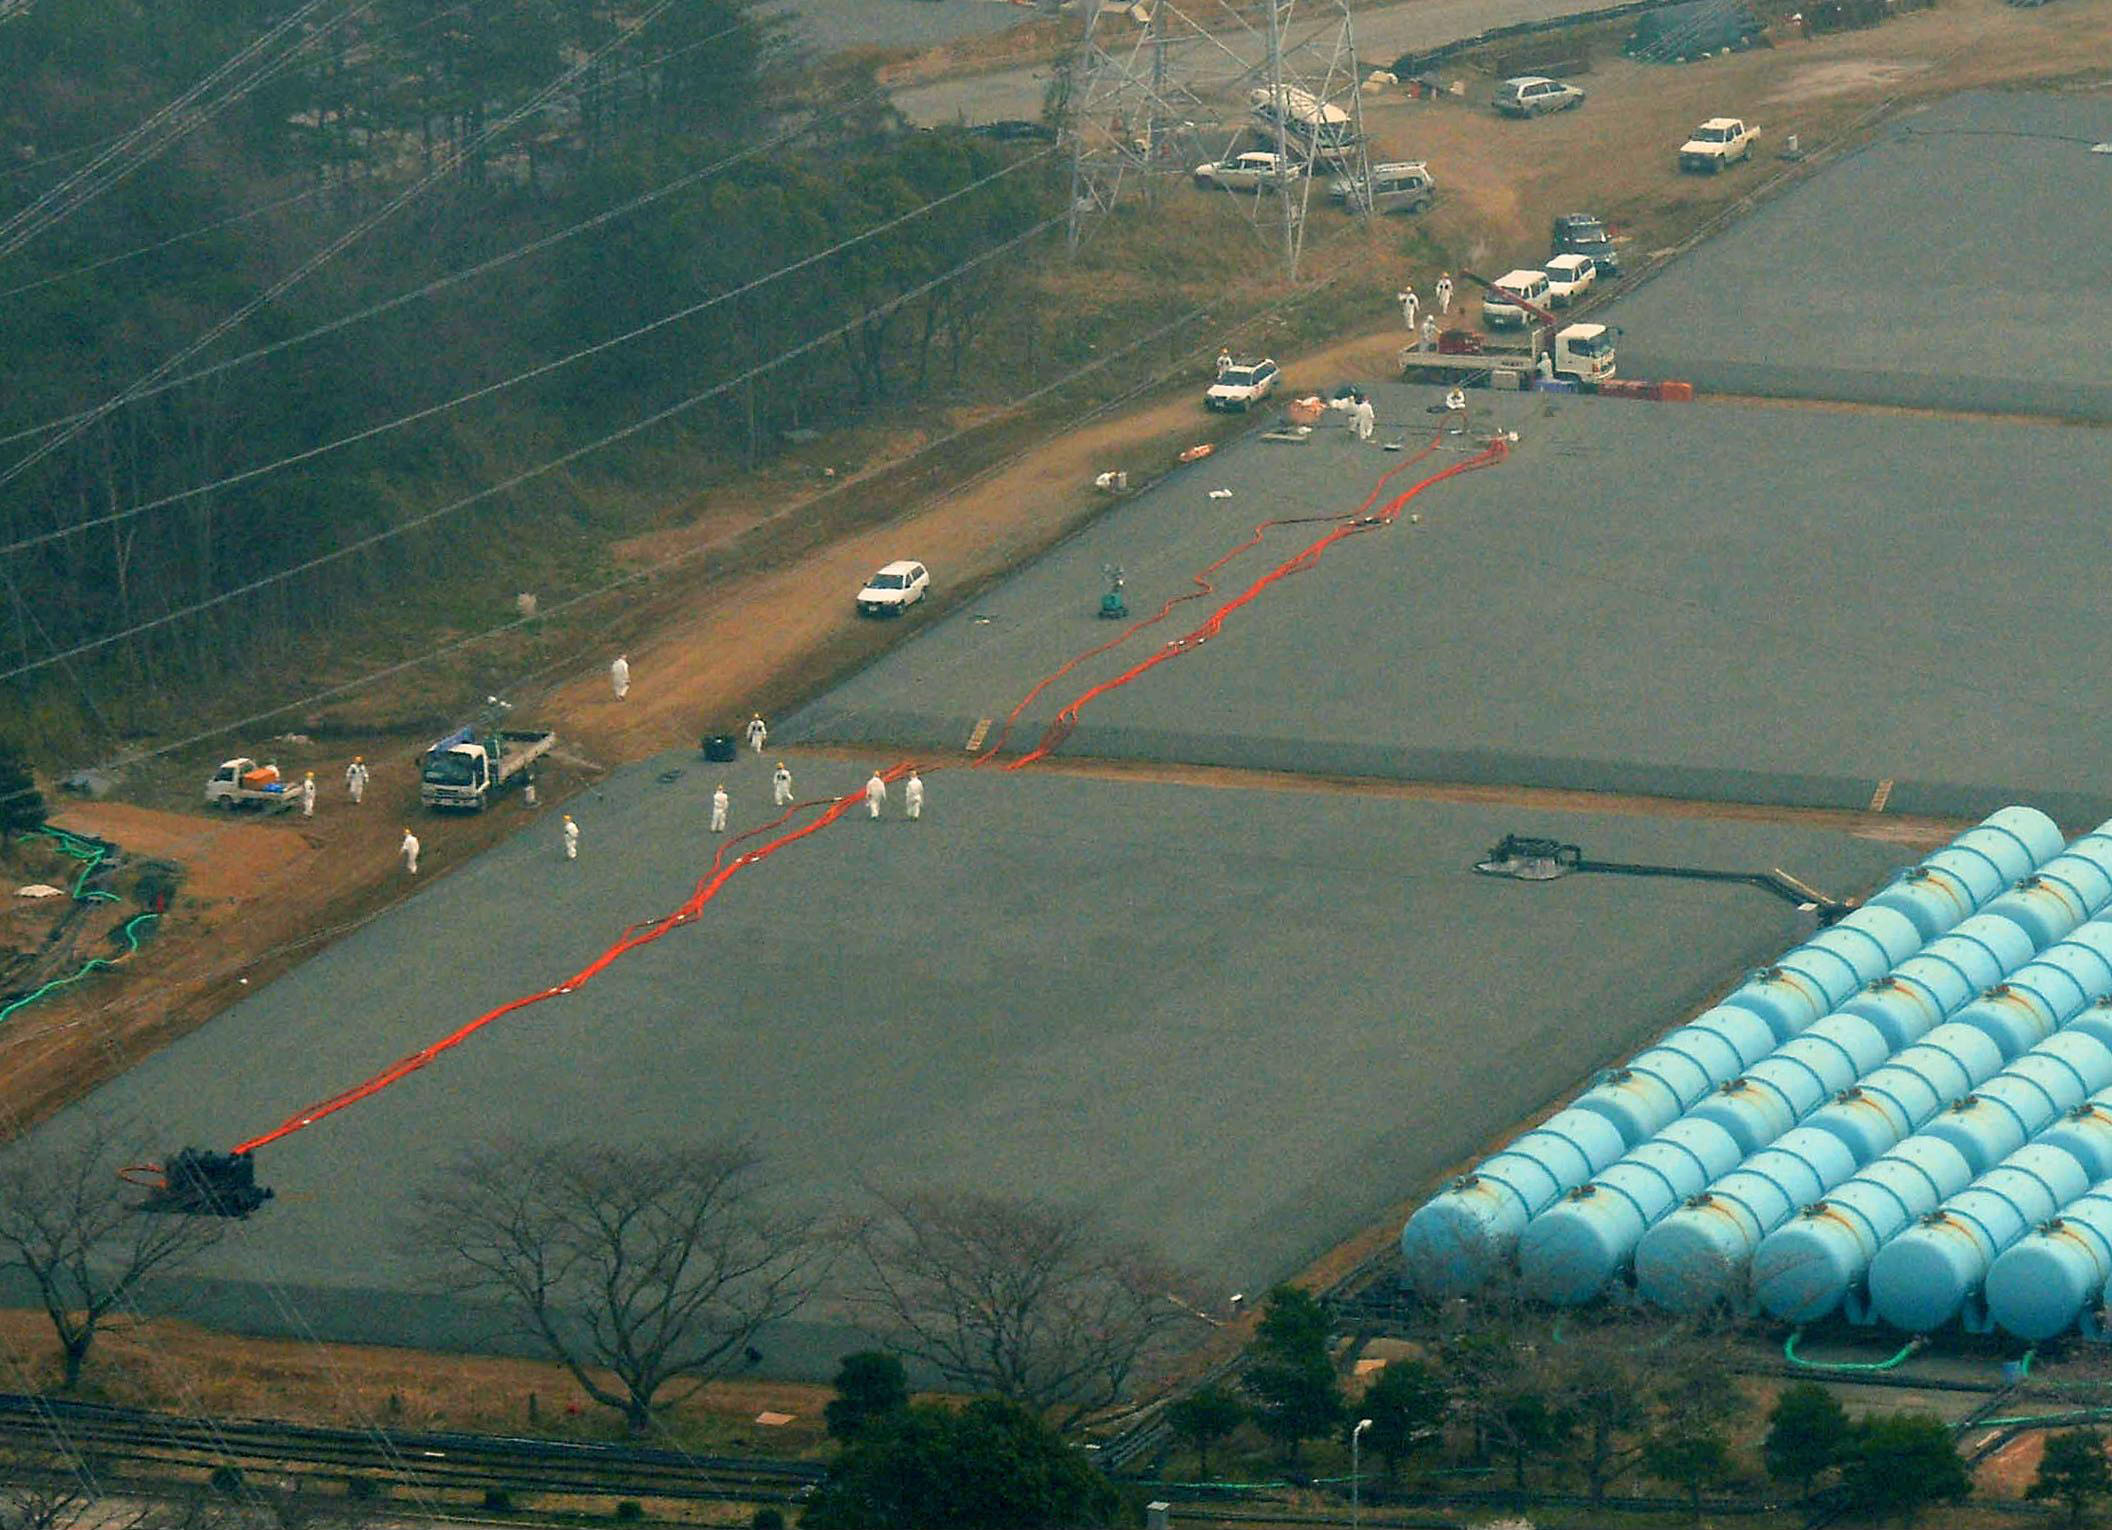 Meanwhile In Fukushima: Multiple Leaks, Radiation Soars To 1.8 Sieverts/hr